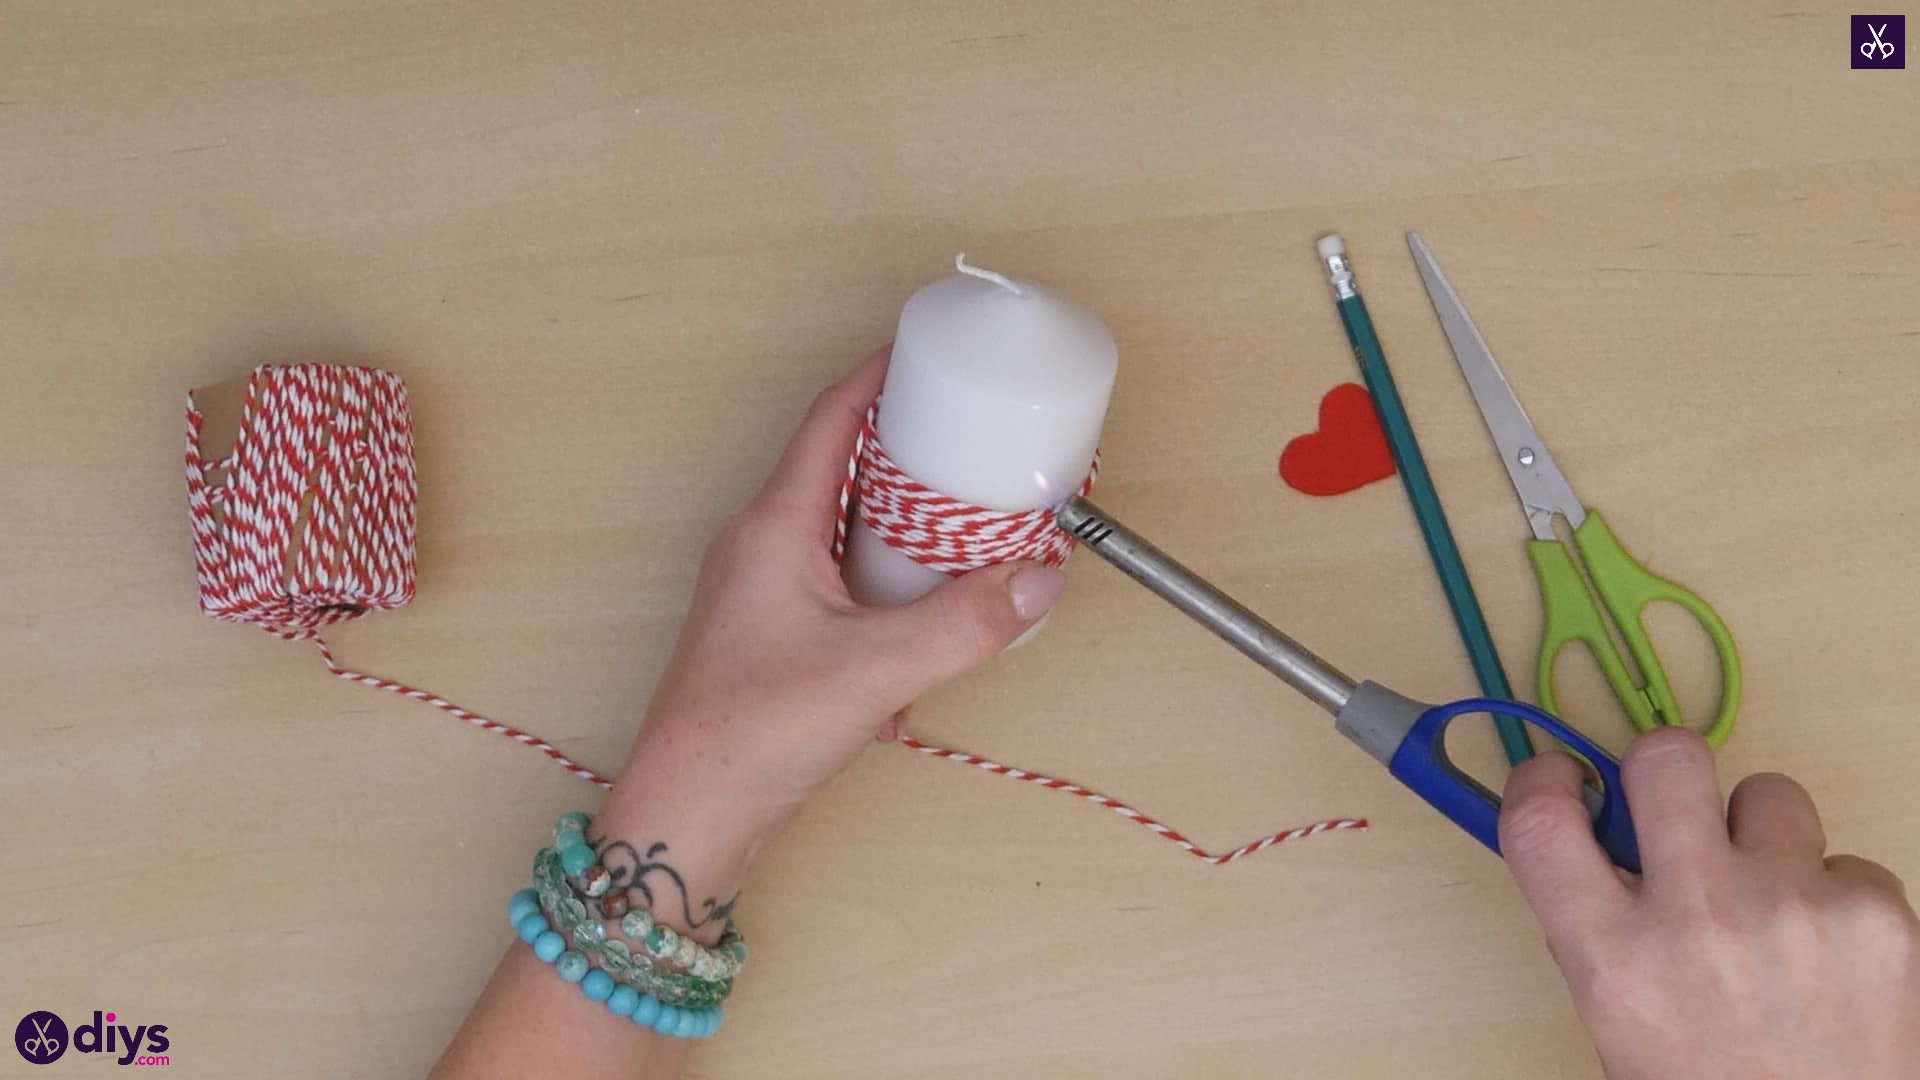 Diy valentine's candle red paper step 3d